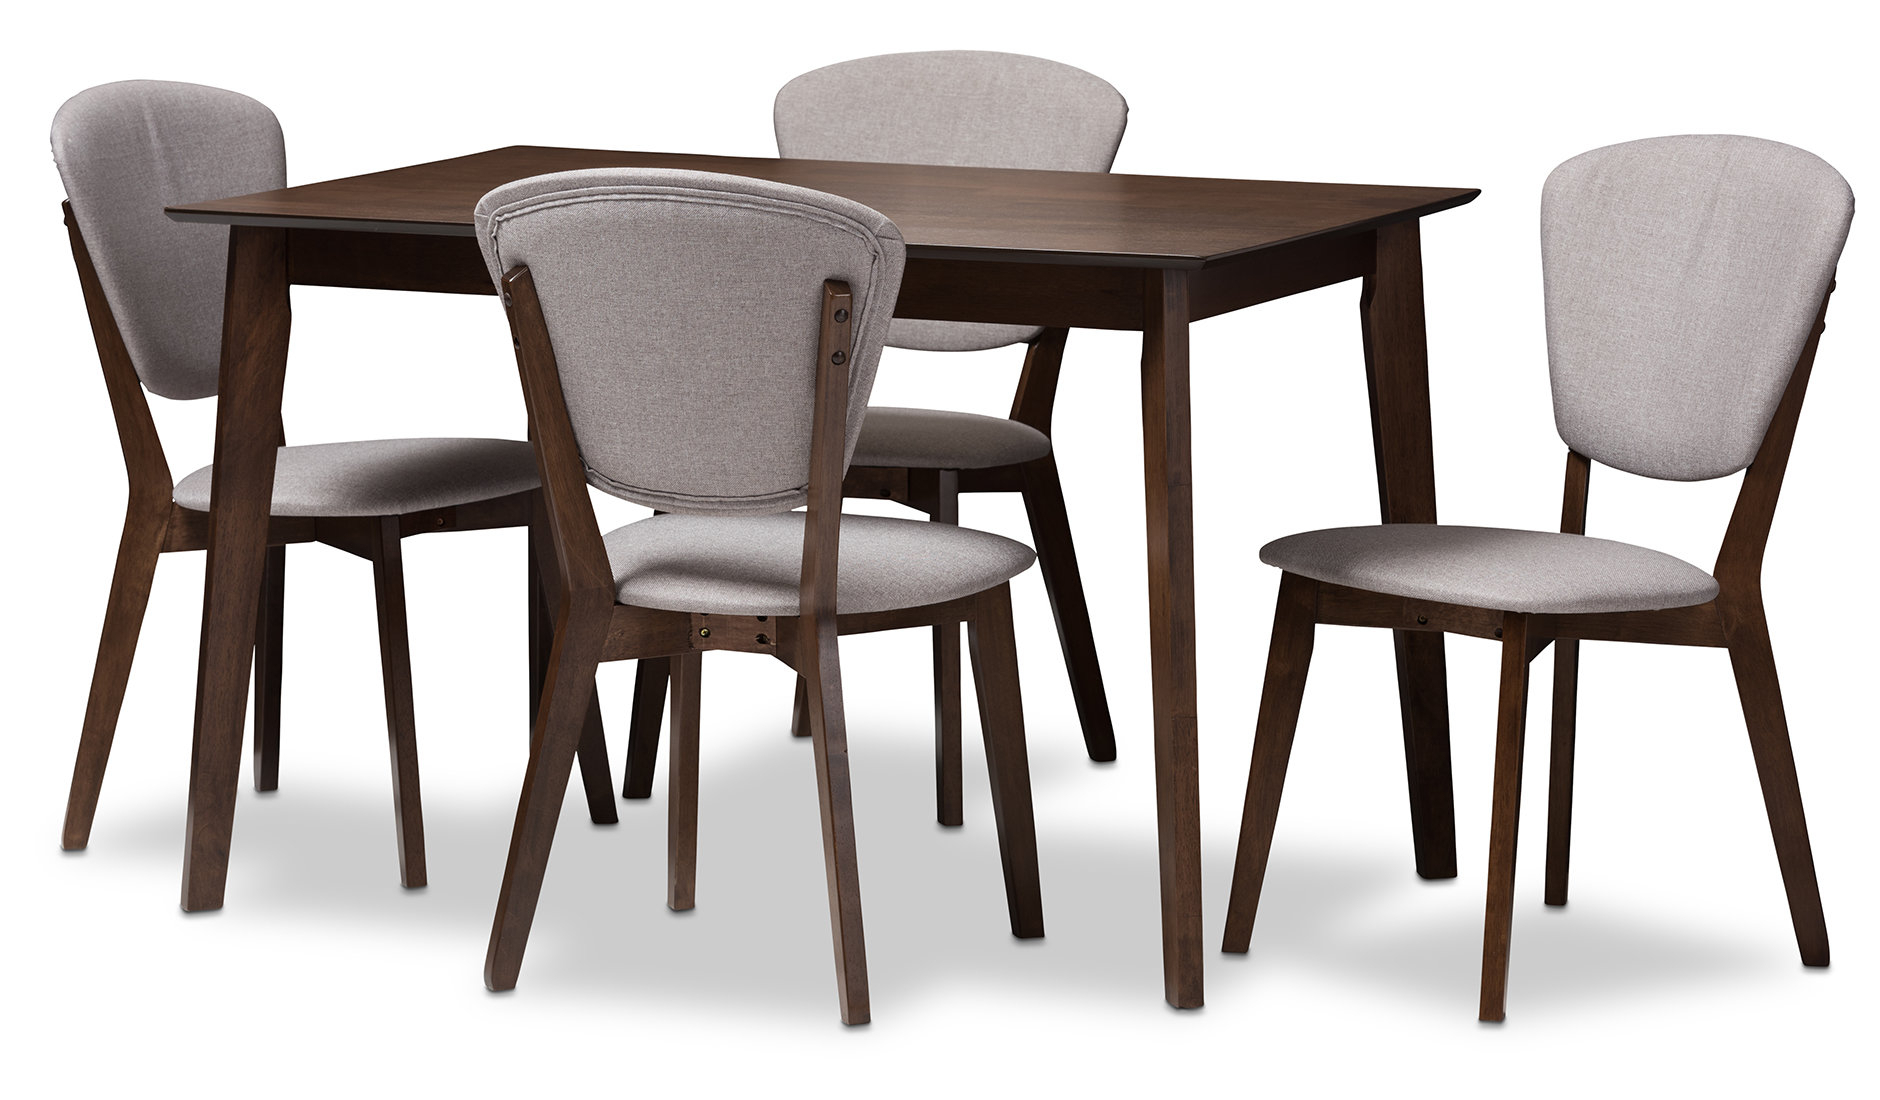 Chaparro 5 Piece Dining Set Within Most Up To Date Kerley 4 Piece Dining Sets (Image 5 of 20)